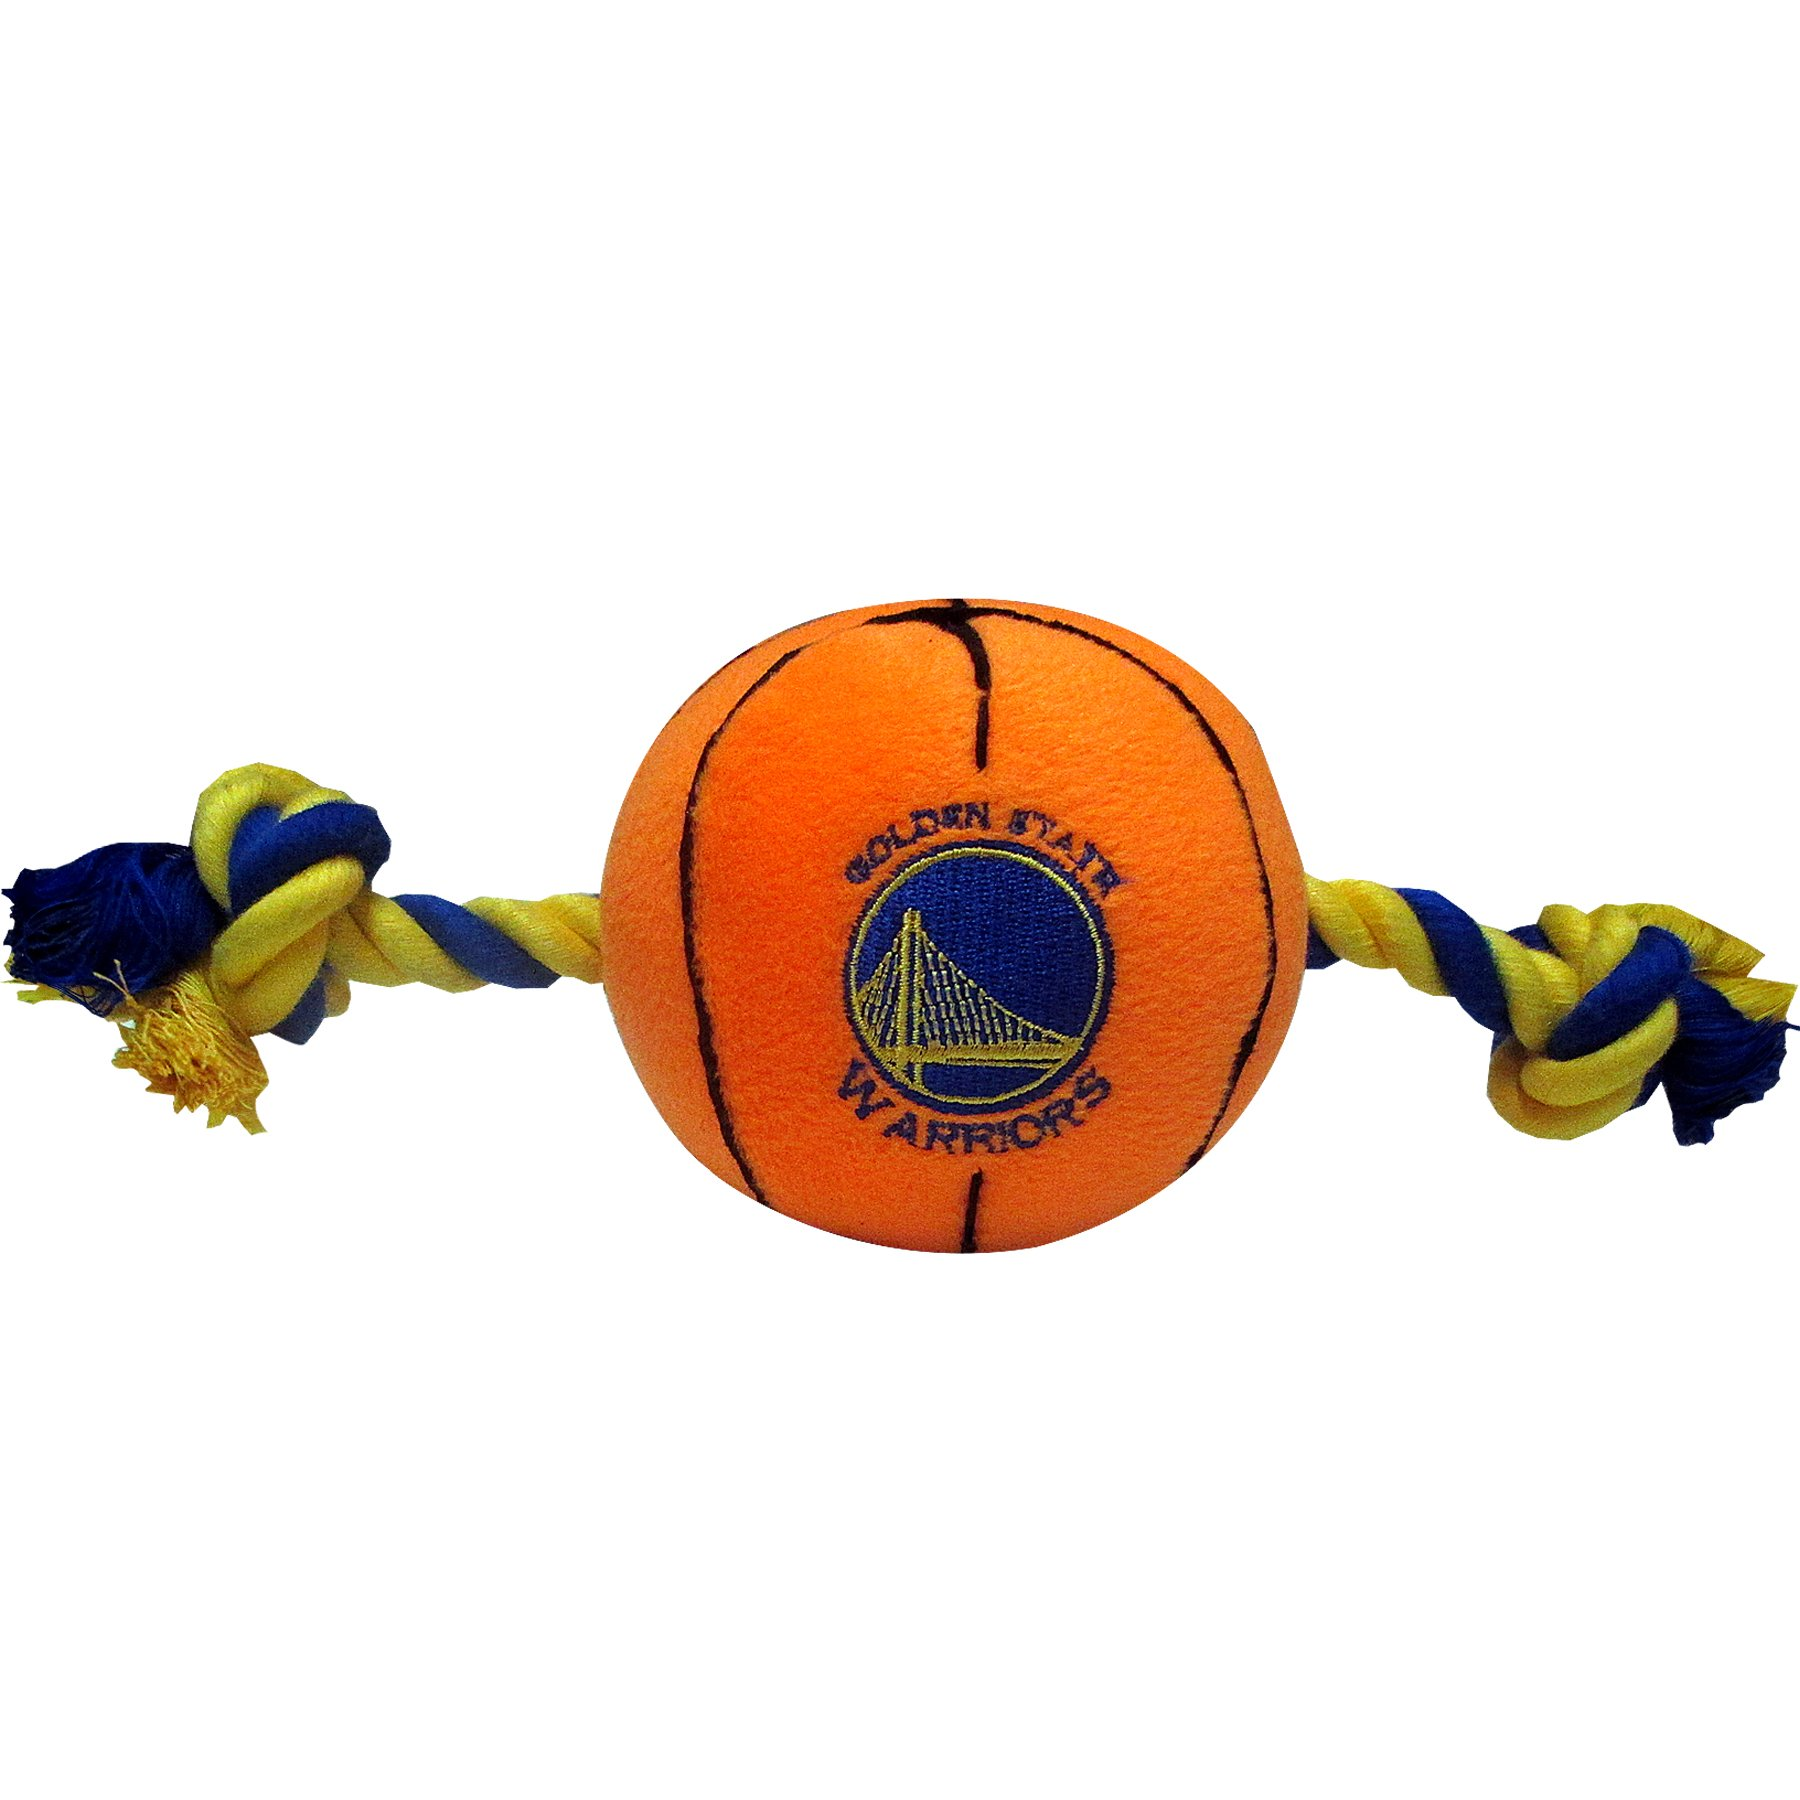 Pets First Golden State Warriors Dog Basketball Toy